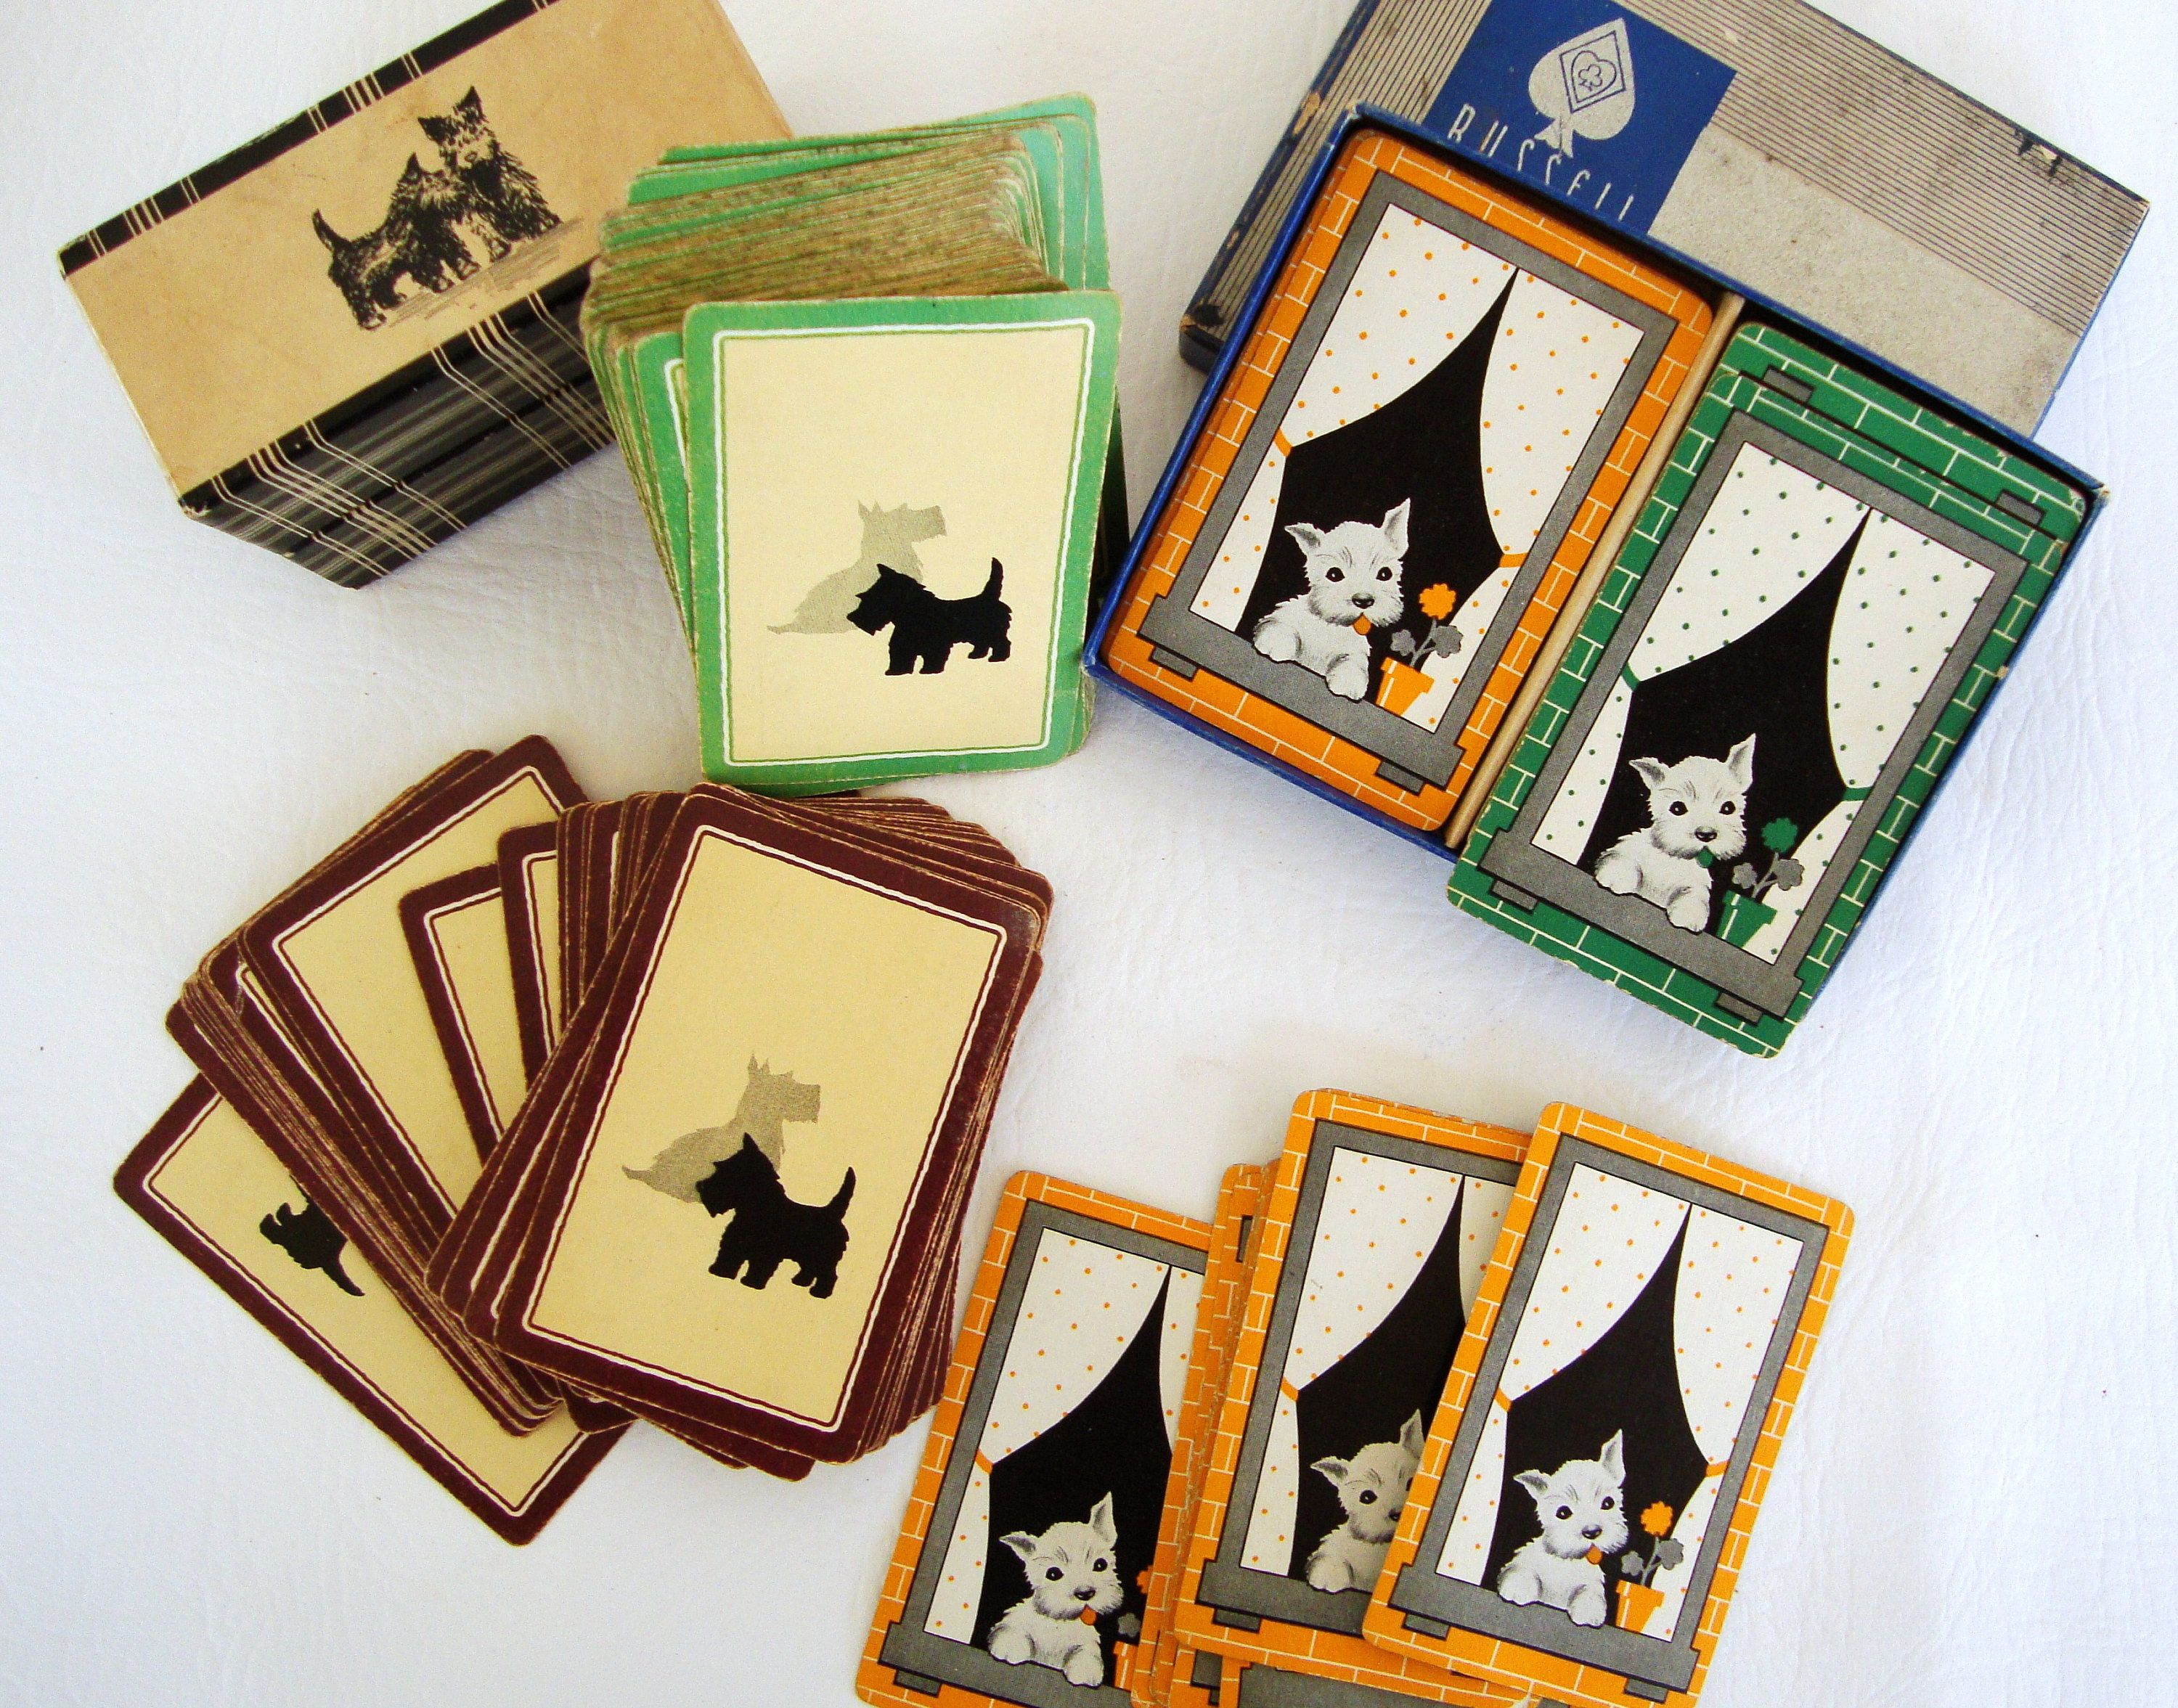 Paper Decor Scrapbooking Vintage Playing Cards Scottie Dogs Paper Playing Cards Scrapbooking Paper Ephemera Dog Cards Dog Playing Cards